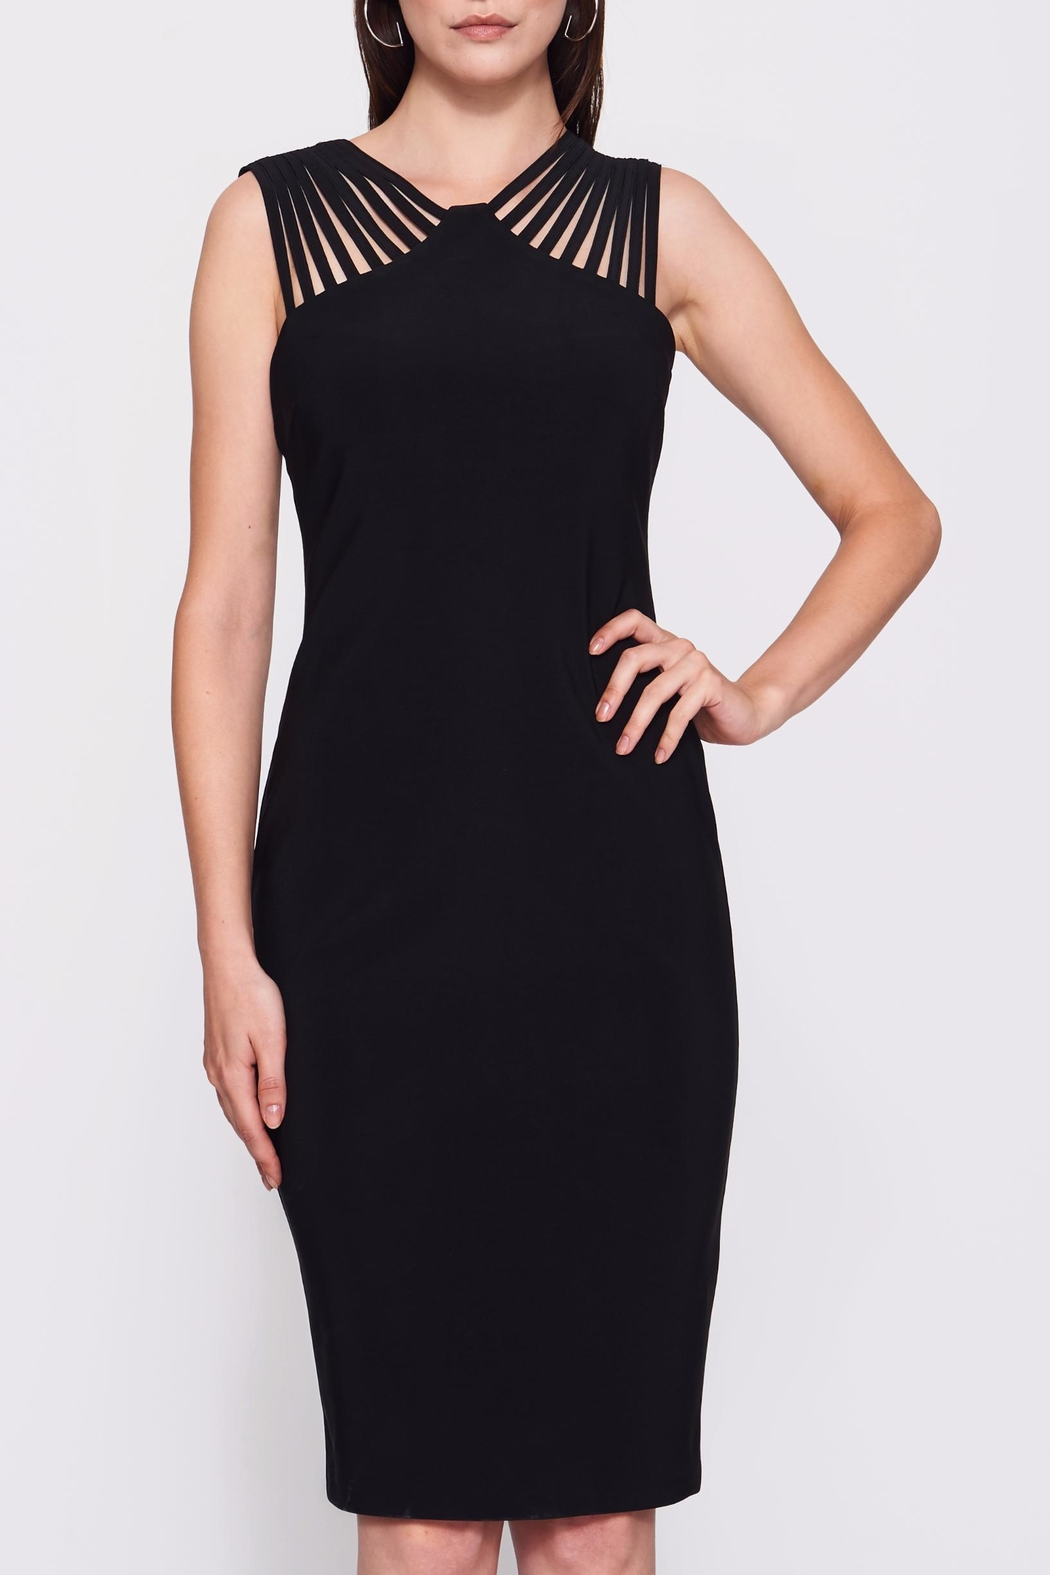 Frank Lyman Lace Black Dress - Front Cropped Image